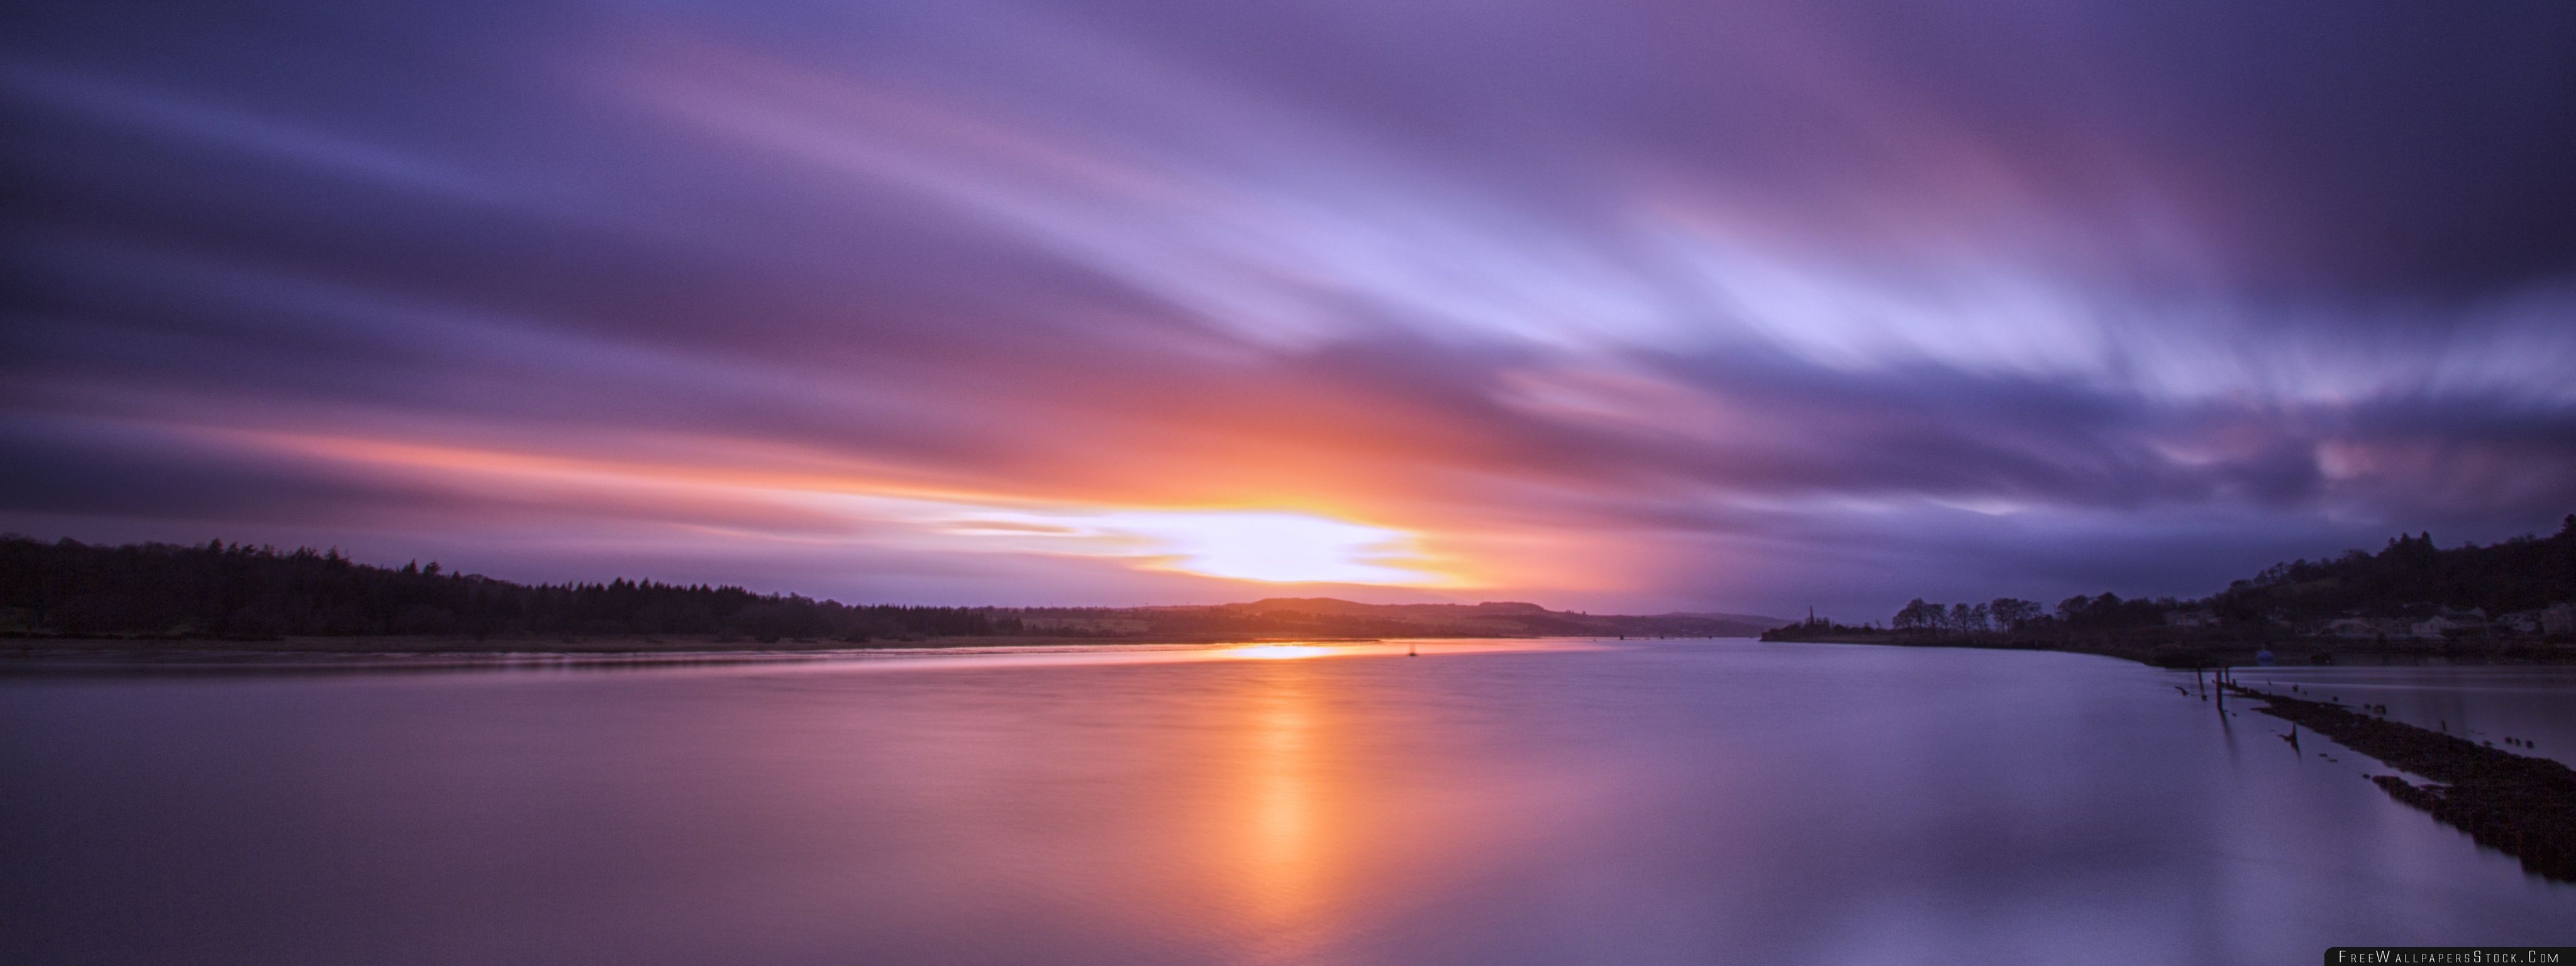 Download Free Wallpaper Sunset   The River Clyde